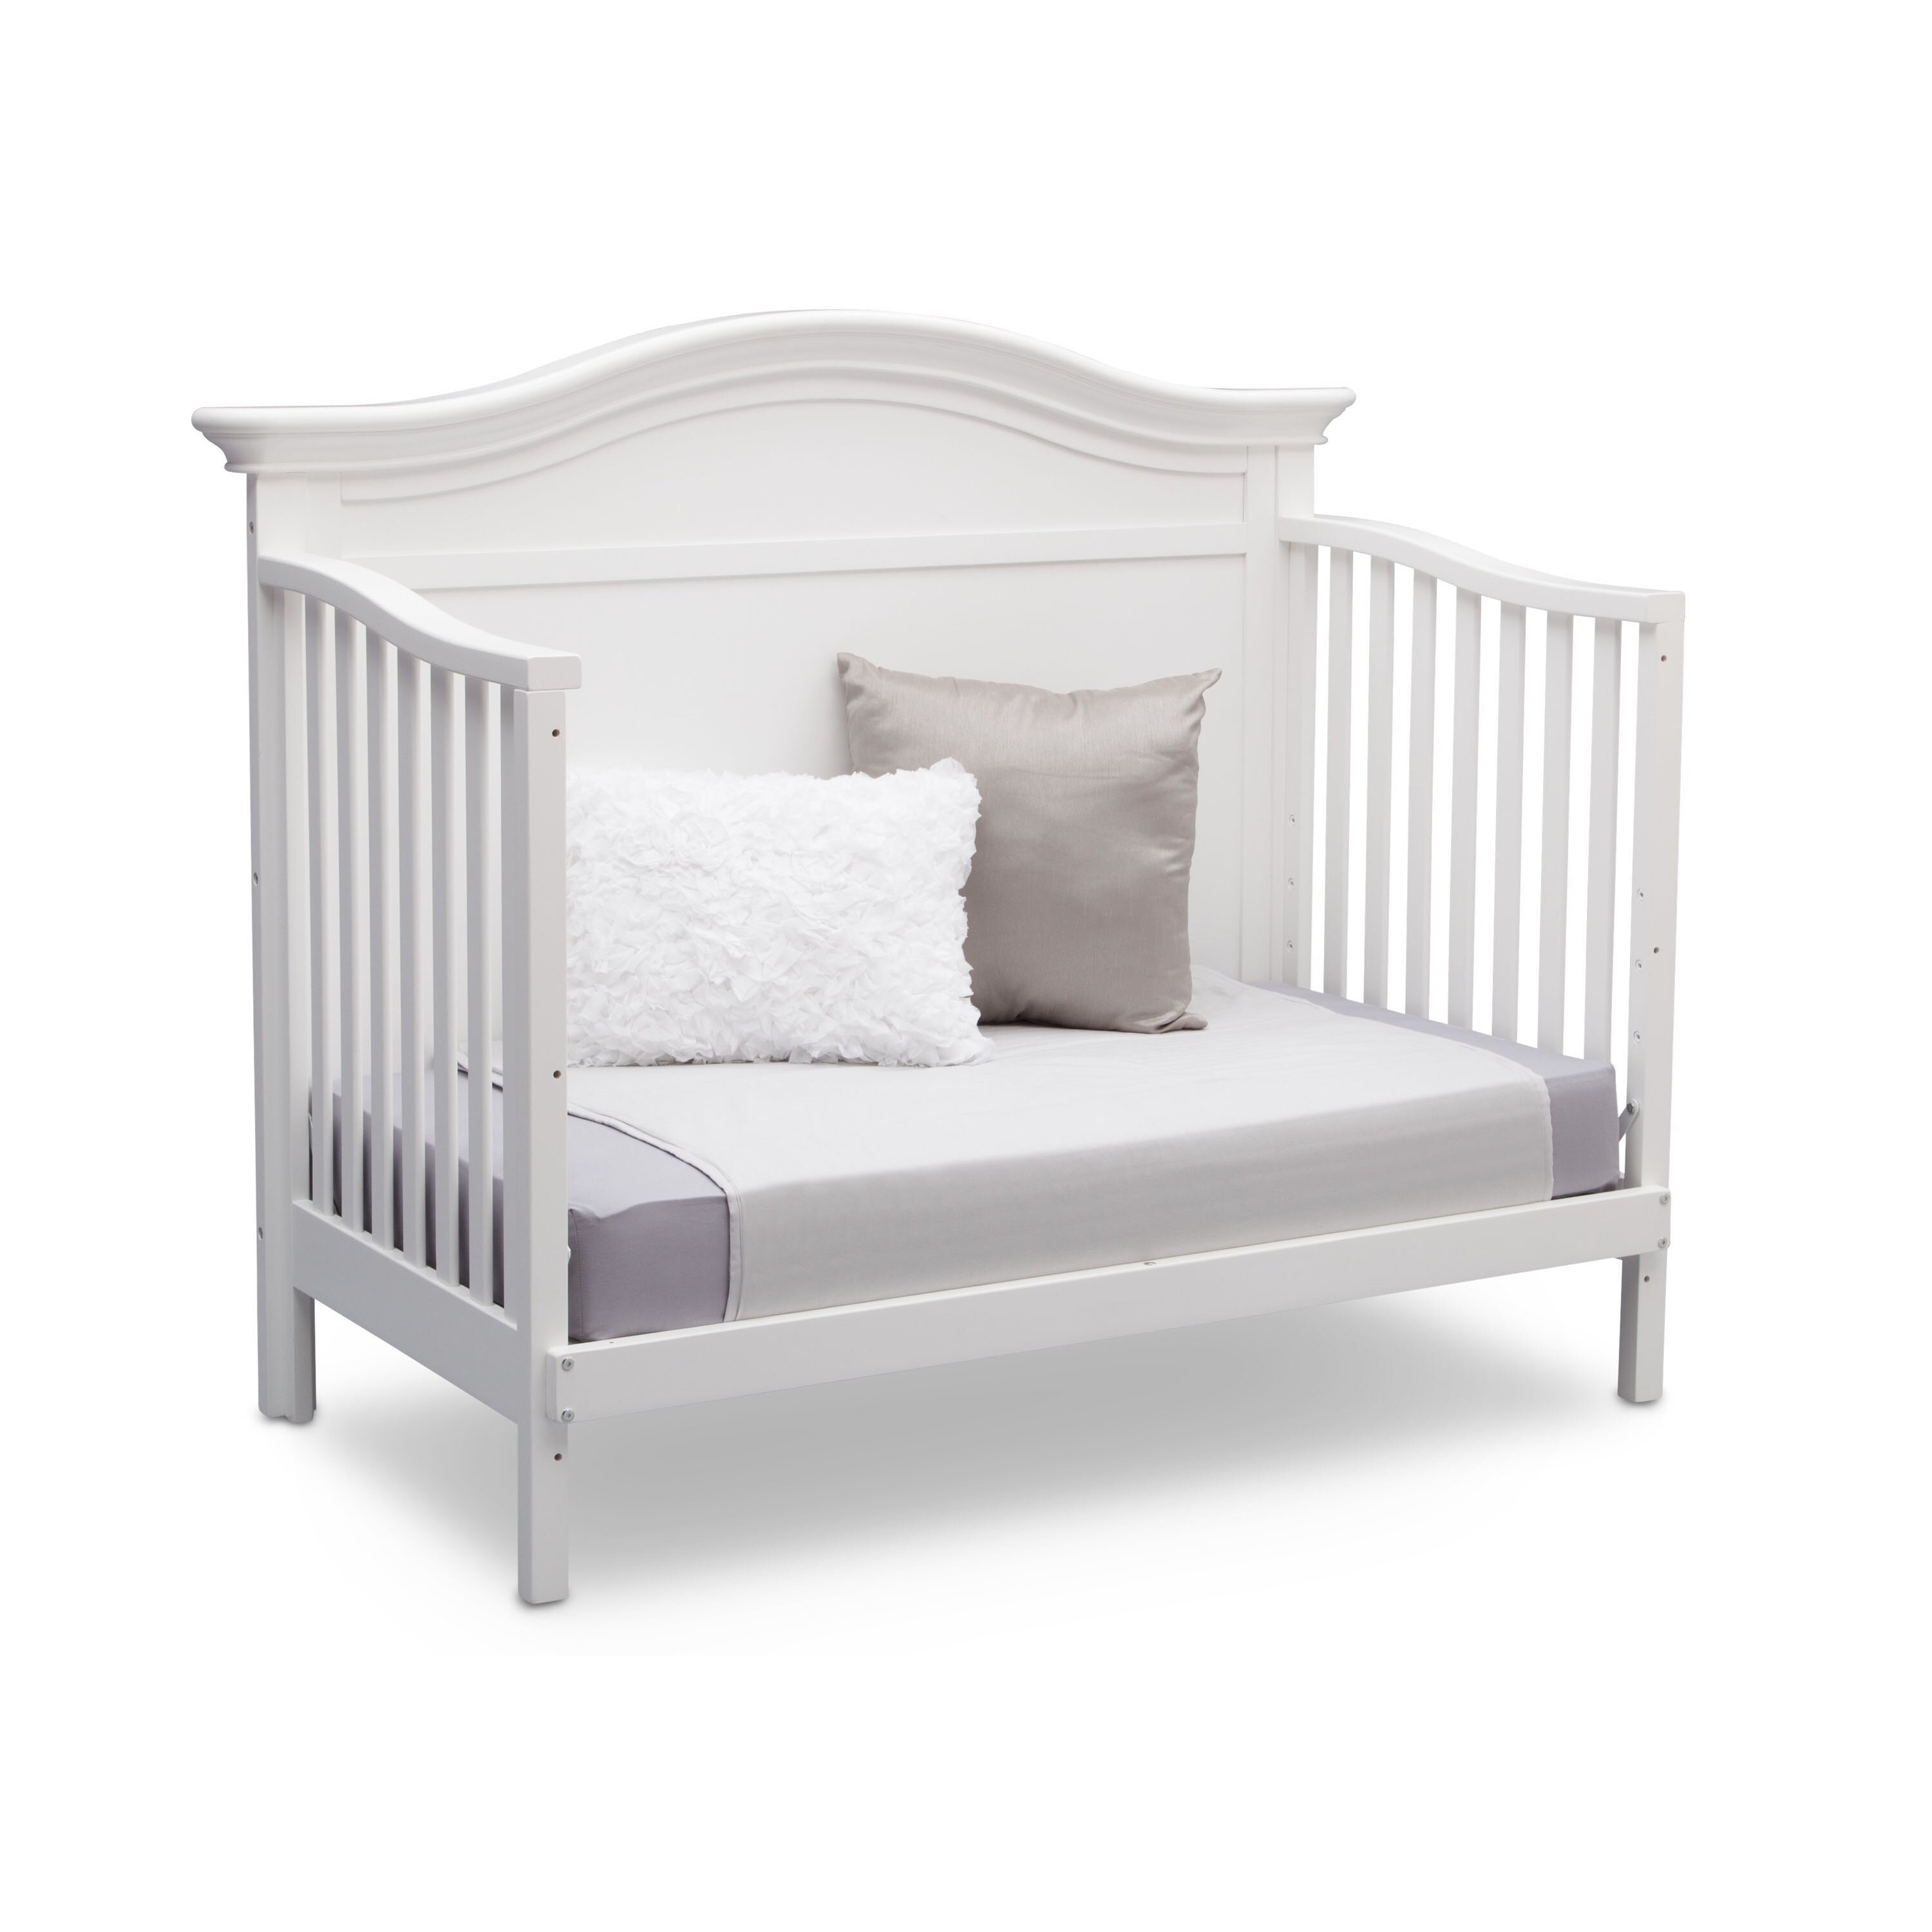 Serta bethpage 4 in 1 convertible crib wayfair for Table 99 bethpage